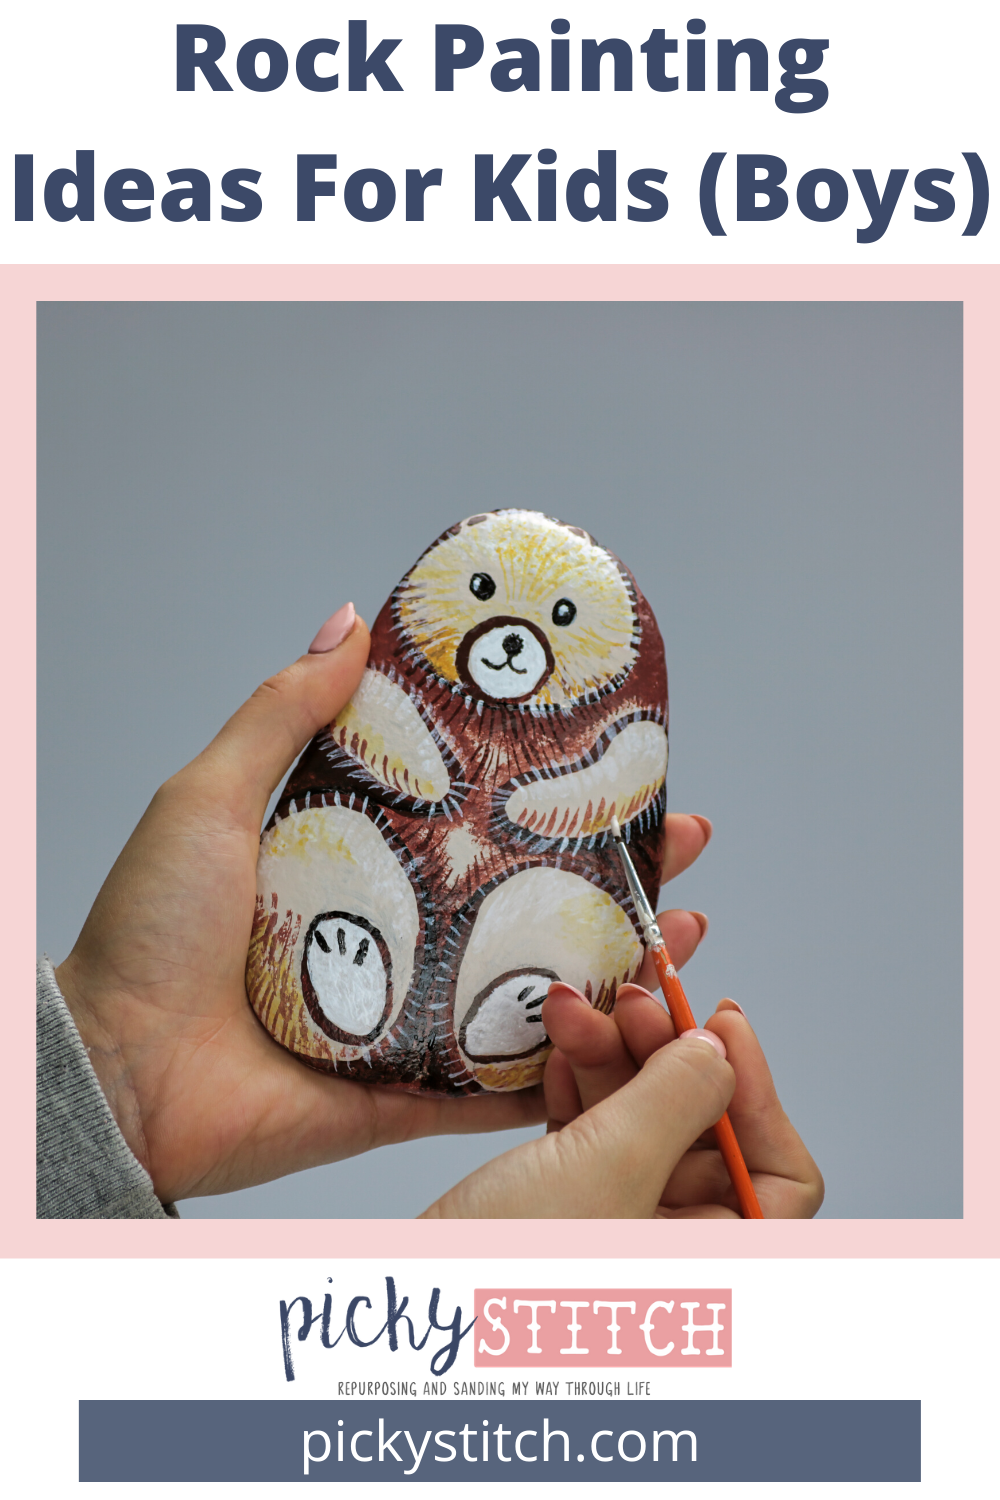 If you want to get the boys interested in painting rocks, just show them some of the ideas from this post. The boys will be all in. Superhero and cartoon ideas work like a charm. #kidscrafts #craftsforboys #indoorcraftsforkids #rockpainting